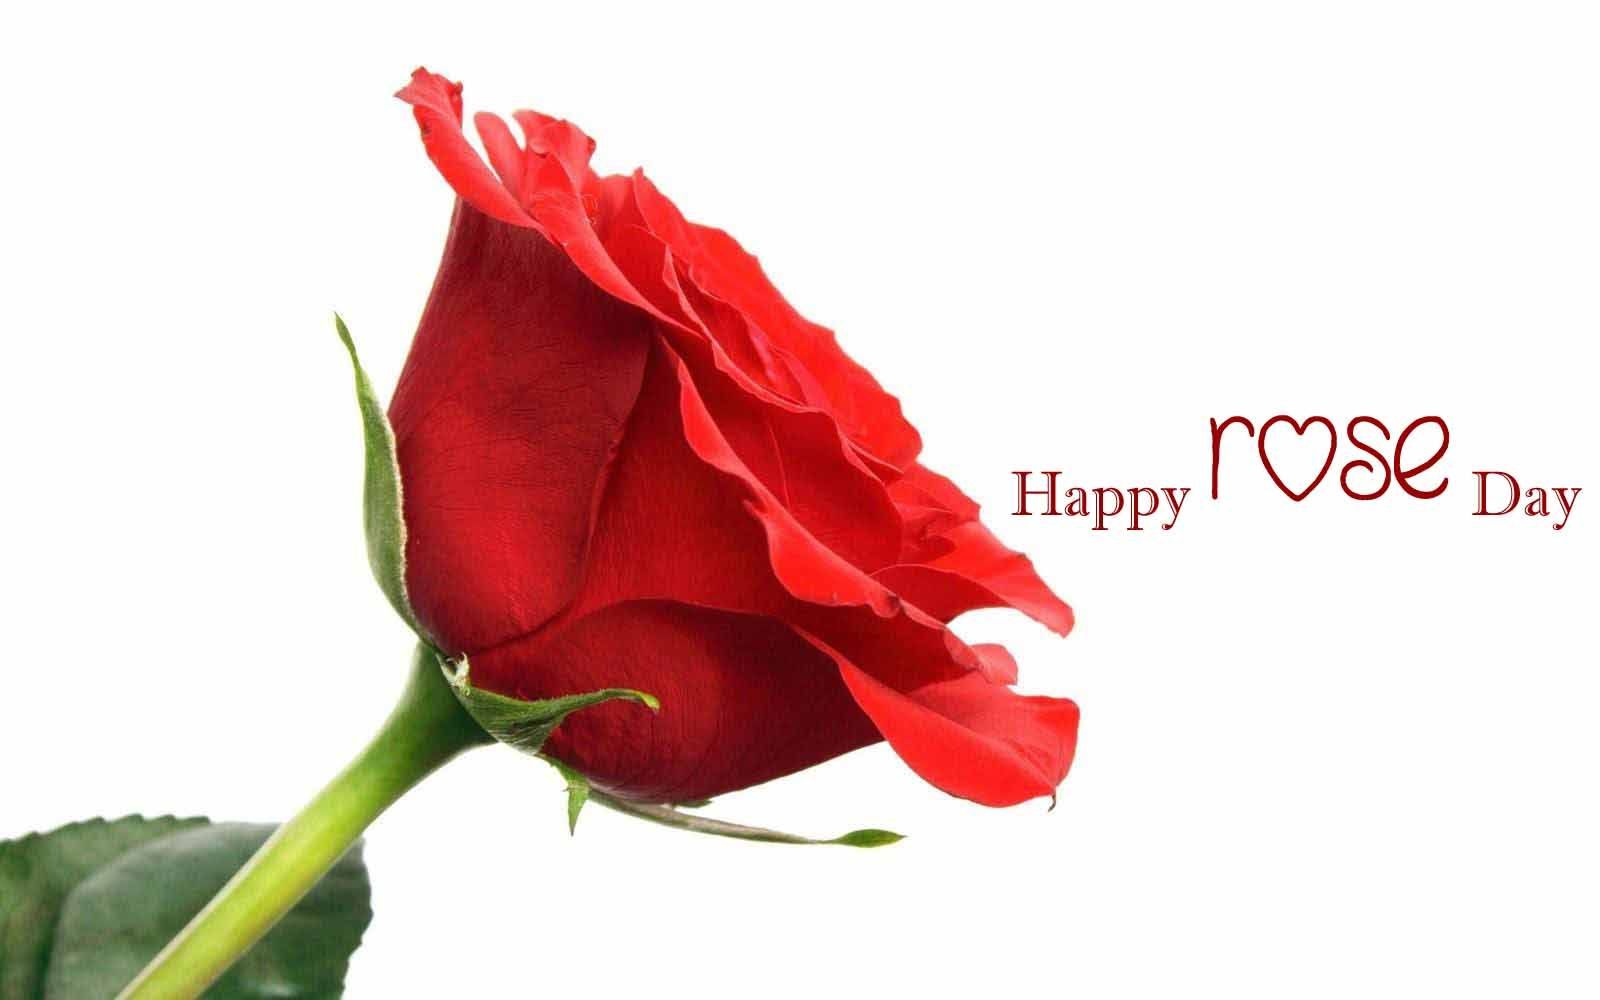 Happy Rose Day Images Photos Pictures Pics Hd Wallpapers Free Download Valentines Day 2020 Images Pho Rose Day Pic Rose Day Shayari Flowers Free Download Happy rose day wallpaper hd photos